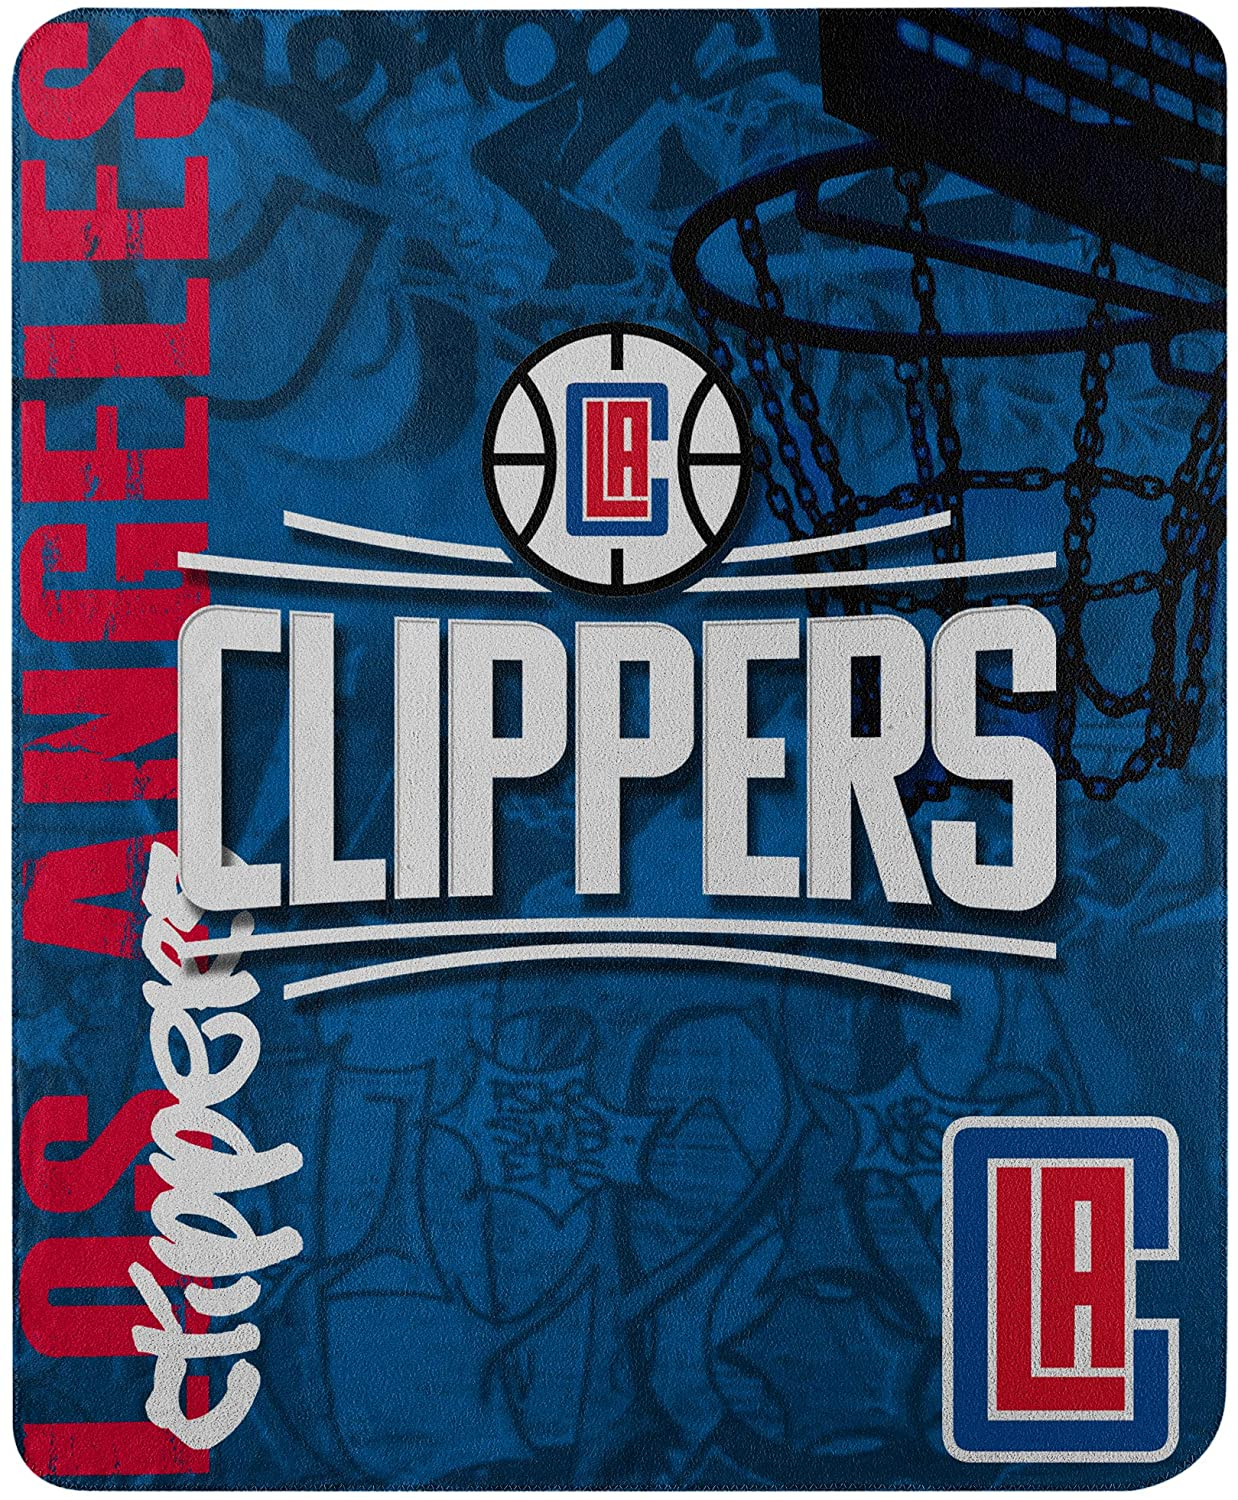 Officially Licensed Nba Throw Los Angeles Clippers Fleece Blanket